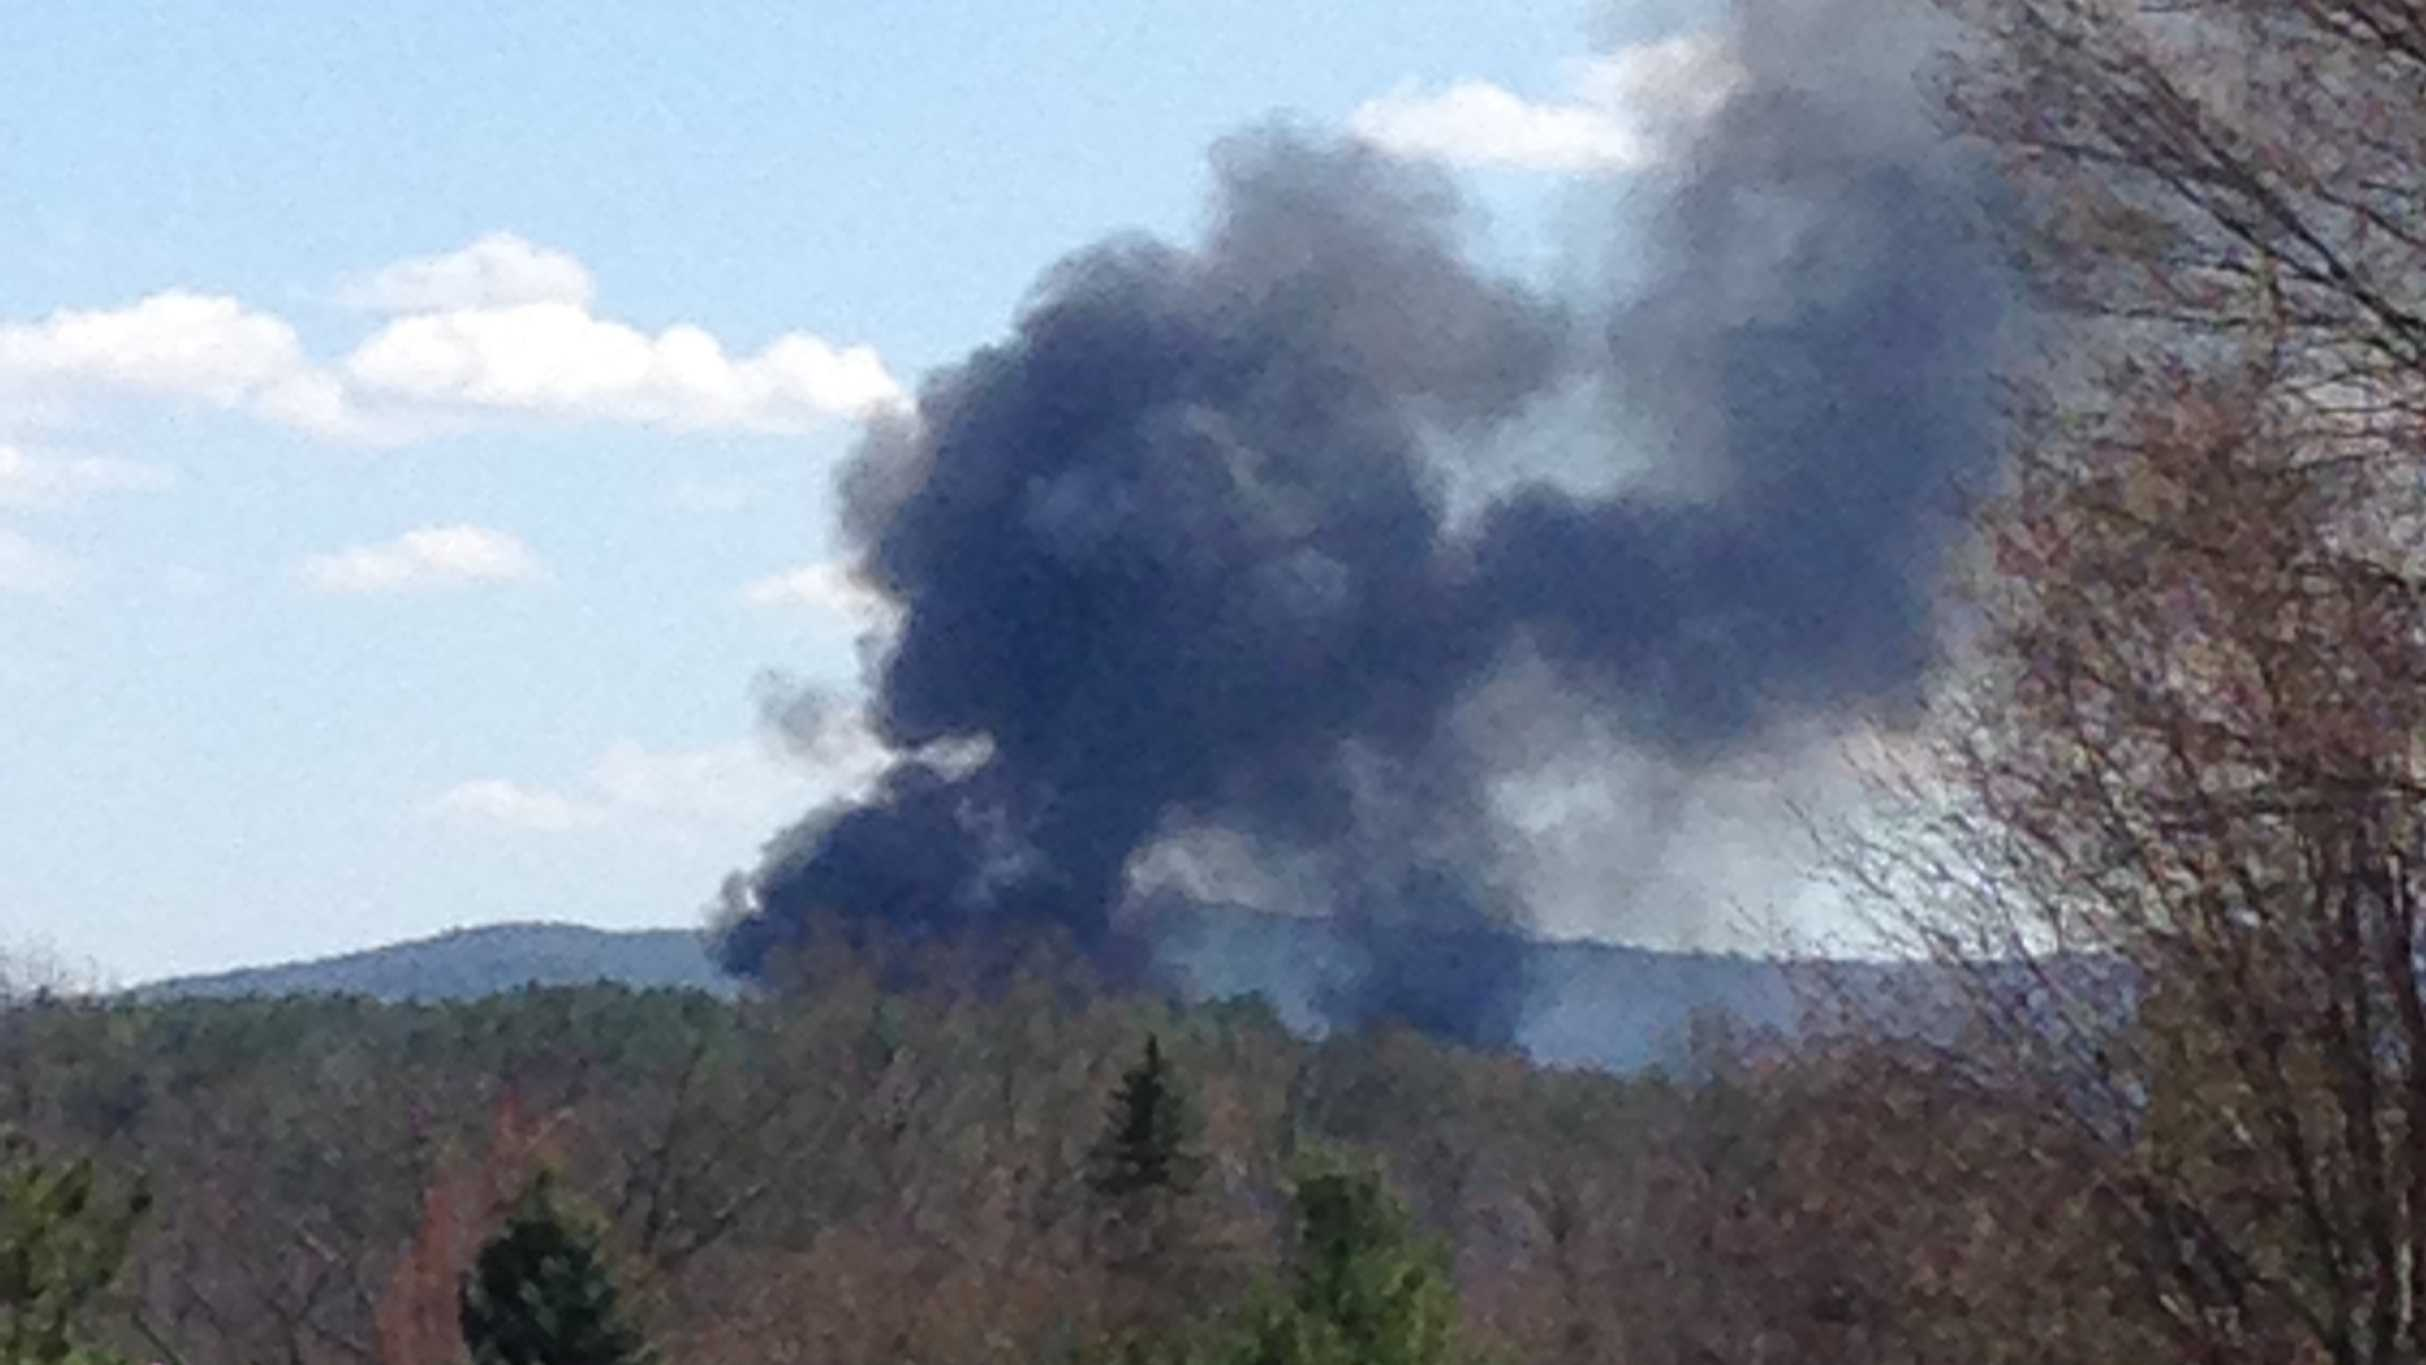 Smoke could be seen from several miles away after a barn fire in Laconia Sunday.